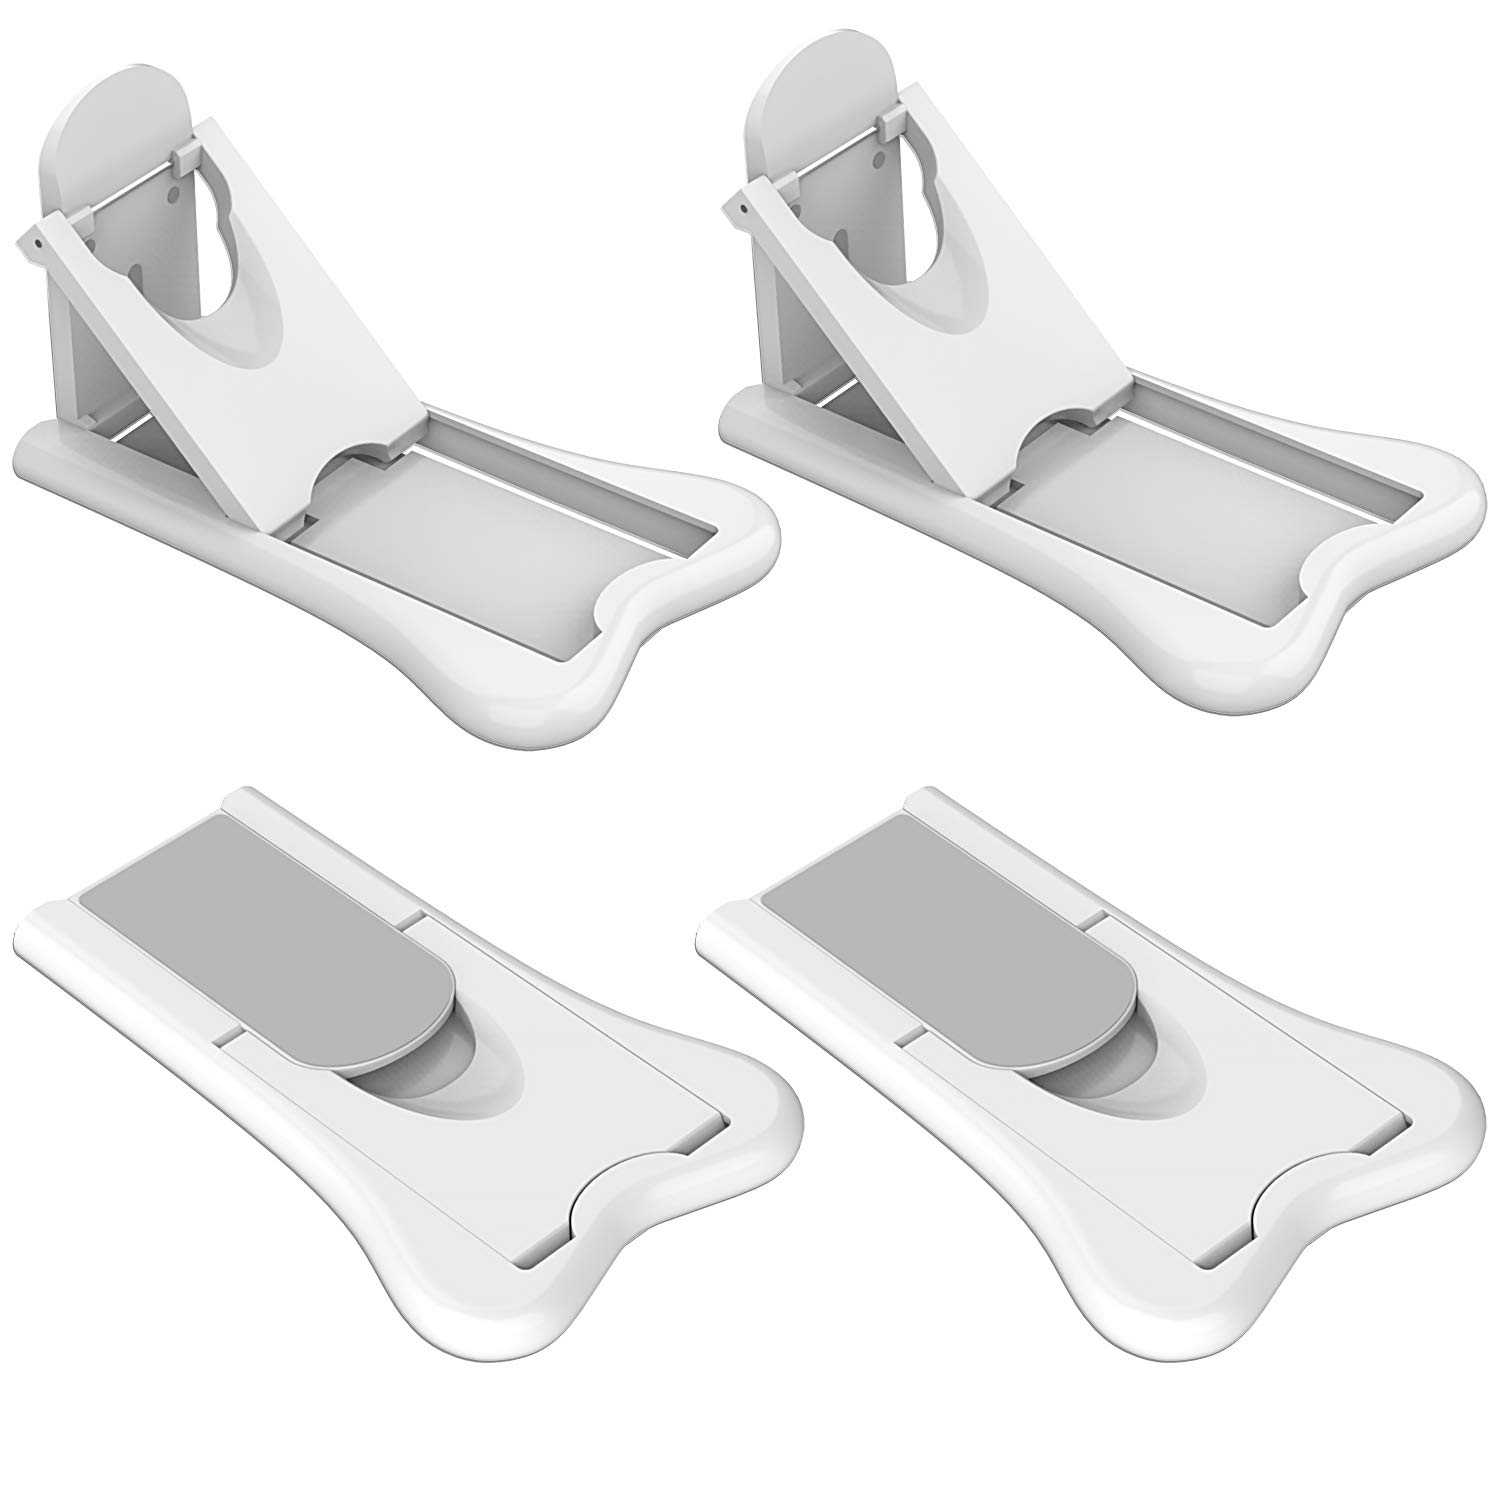 Sliding Door Lock for Seattle Mall Baby Closets Safety-Child Proof Doors G Free shipping anywhere in the nation